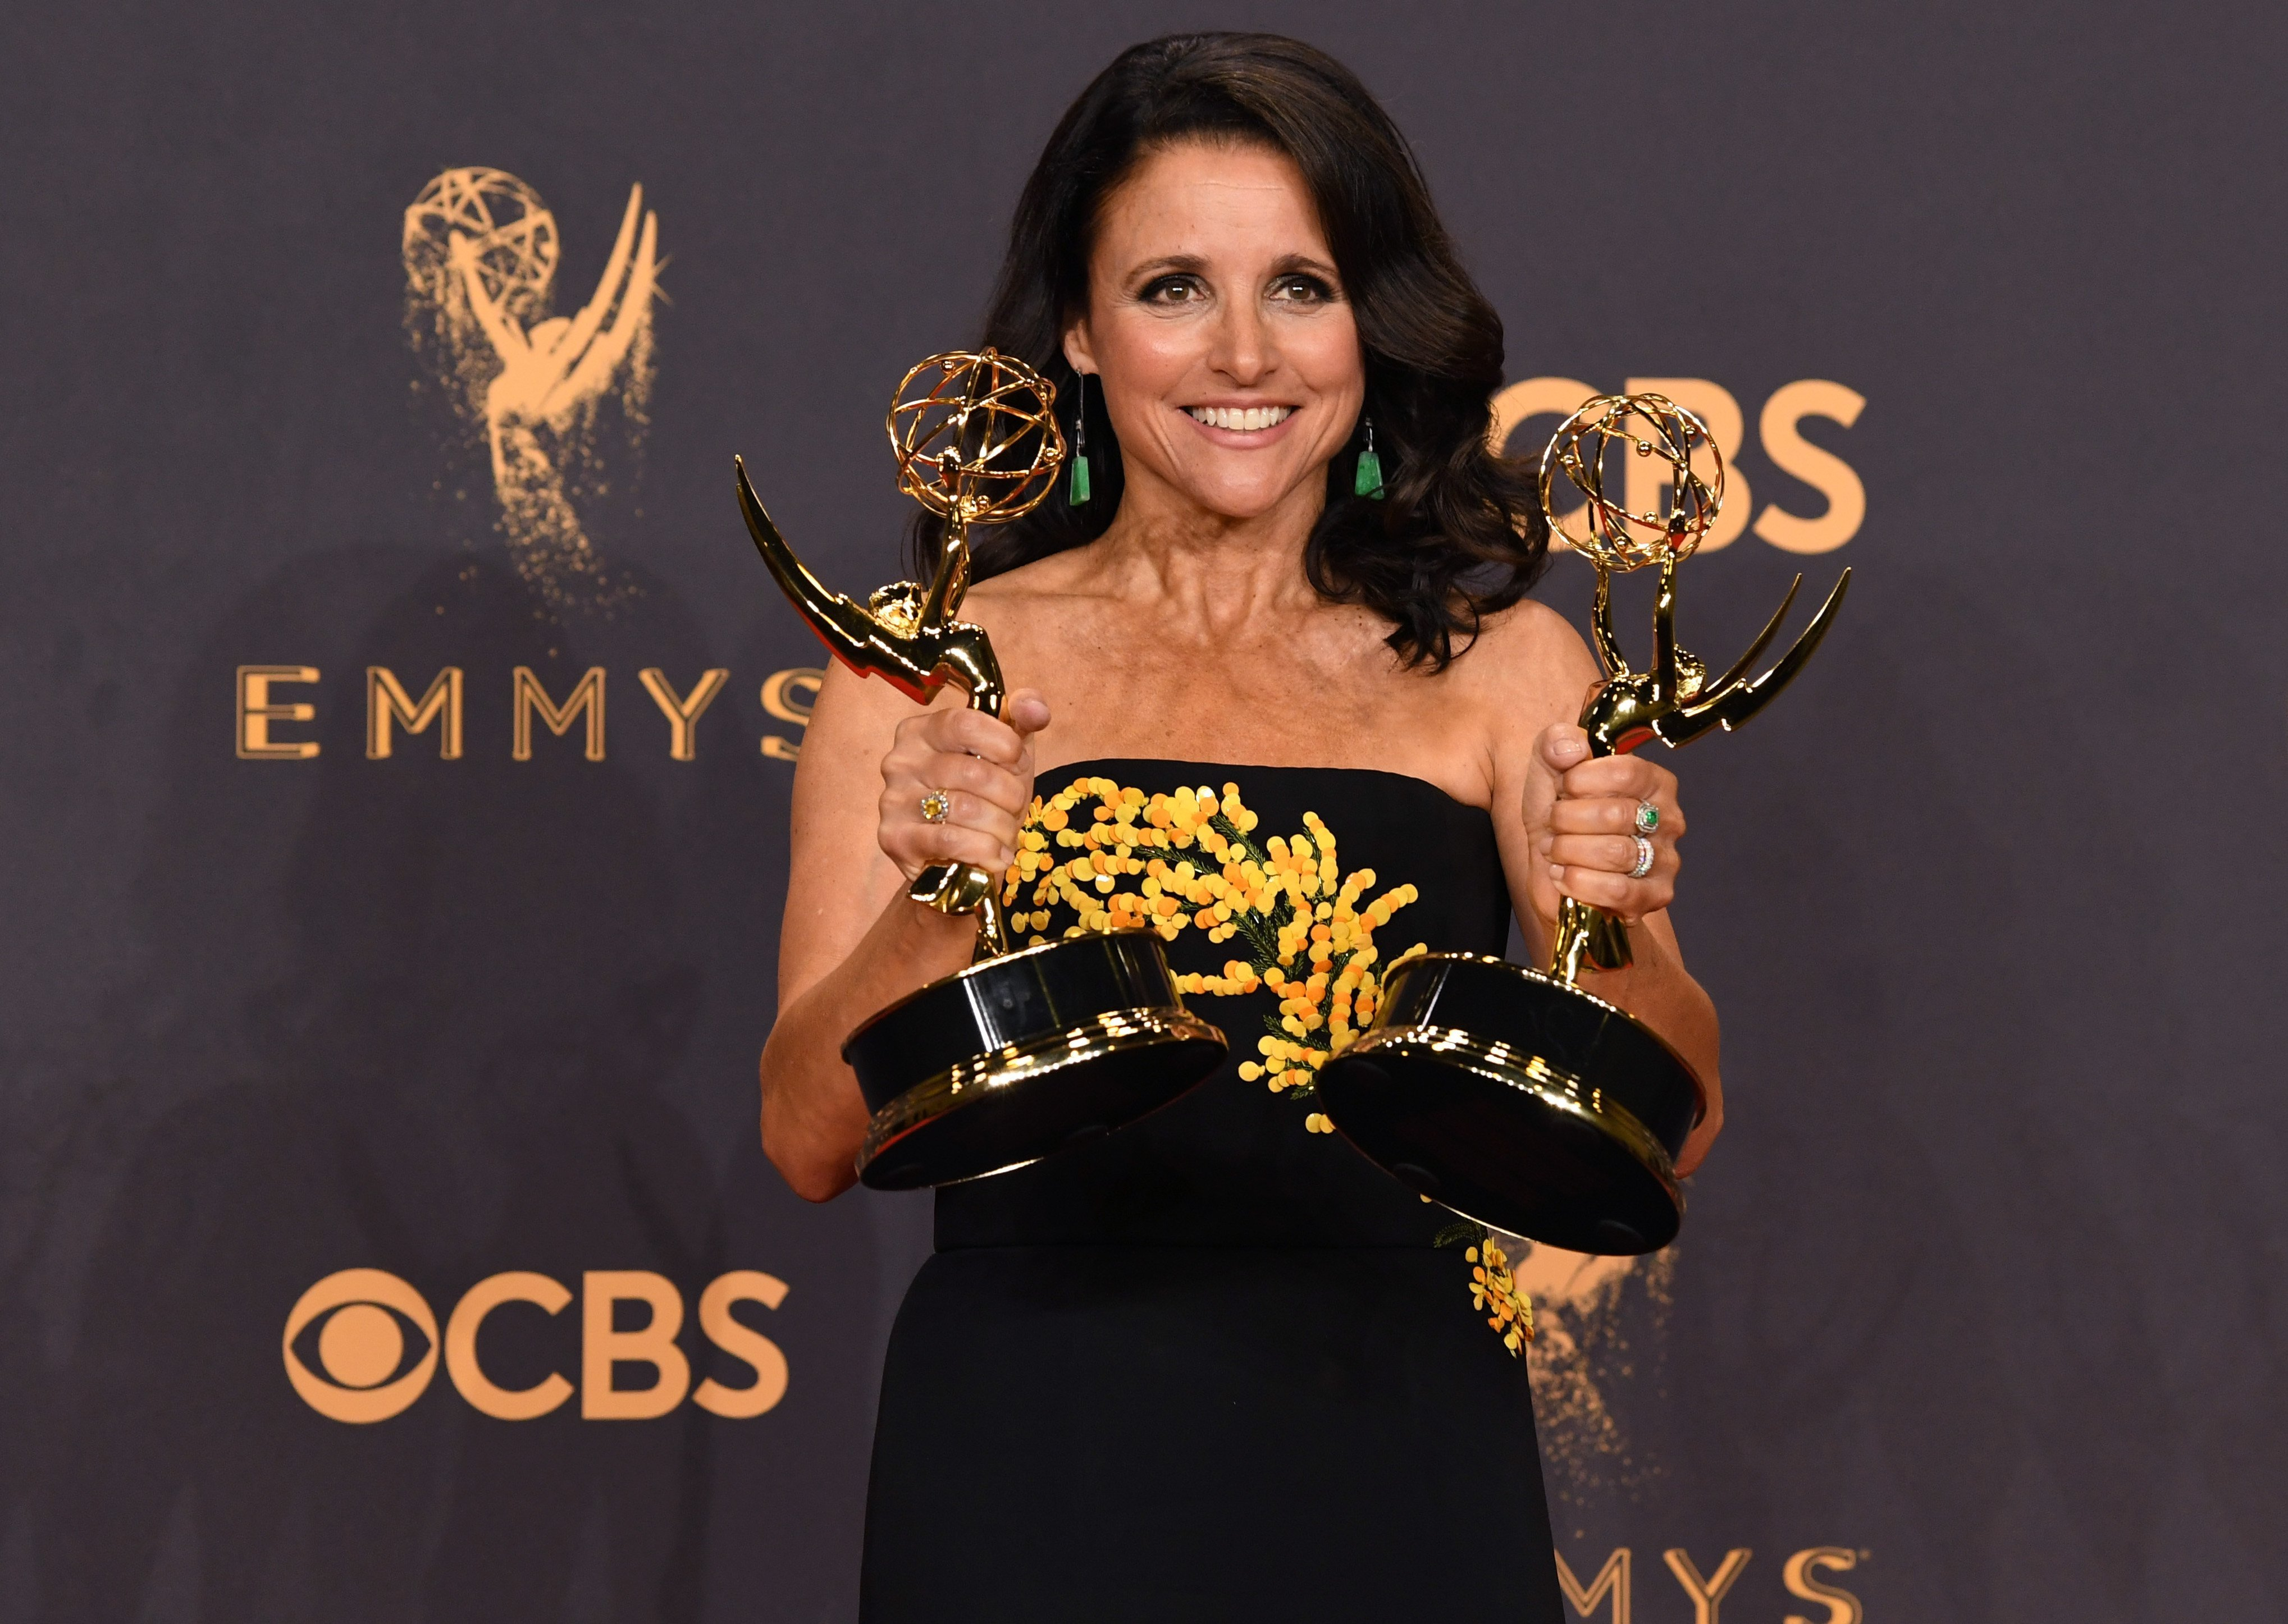 Julia Louis-Dreyfus could be on her way to making more Emmy history